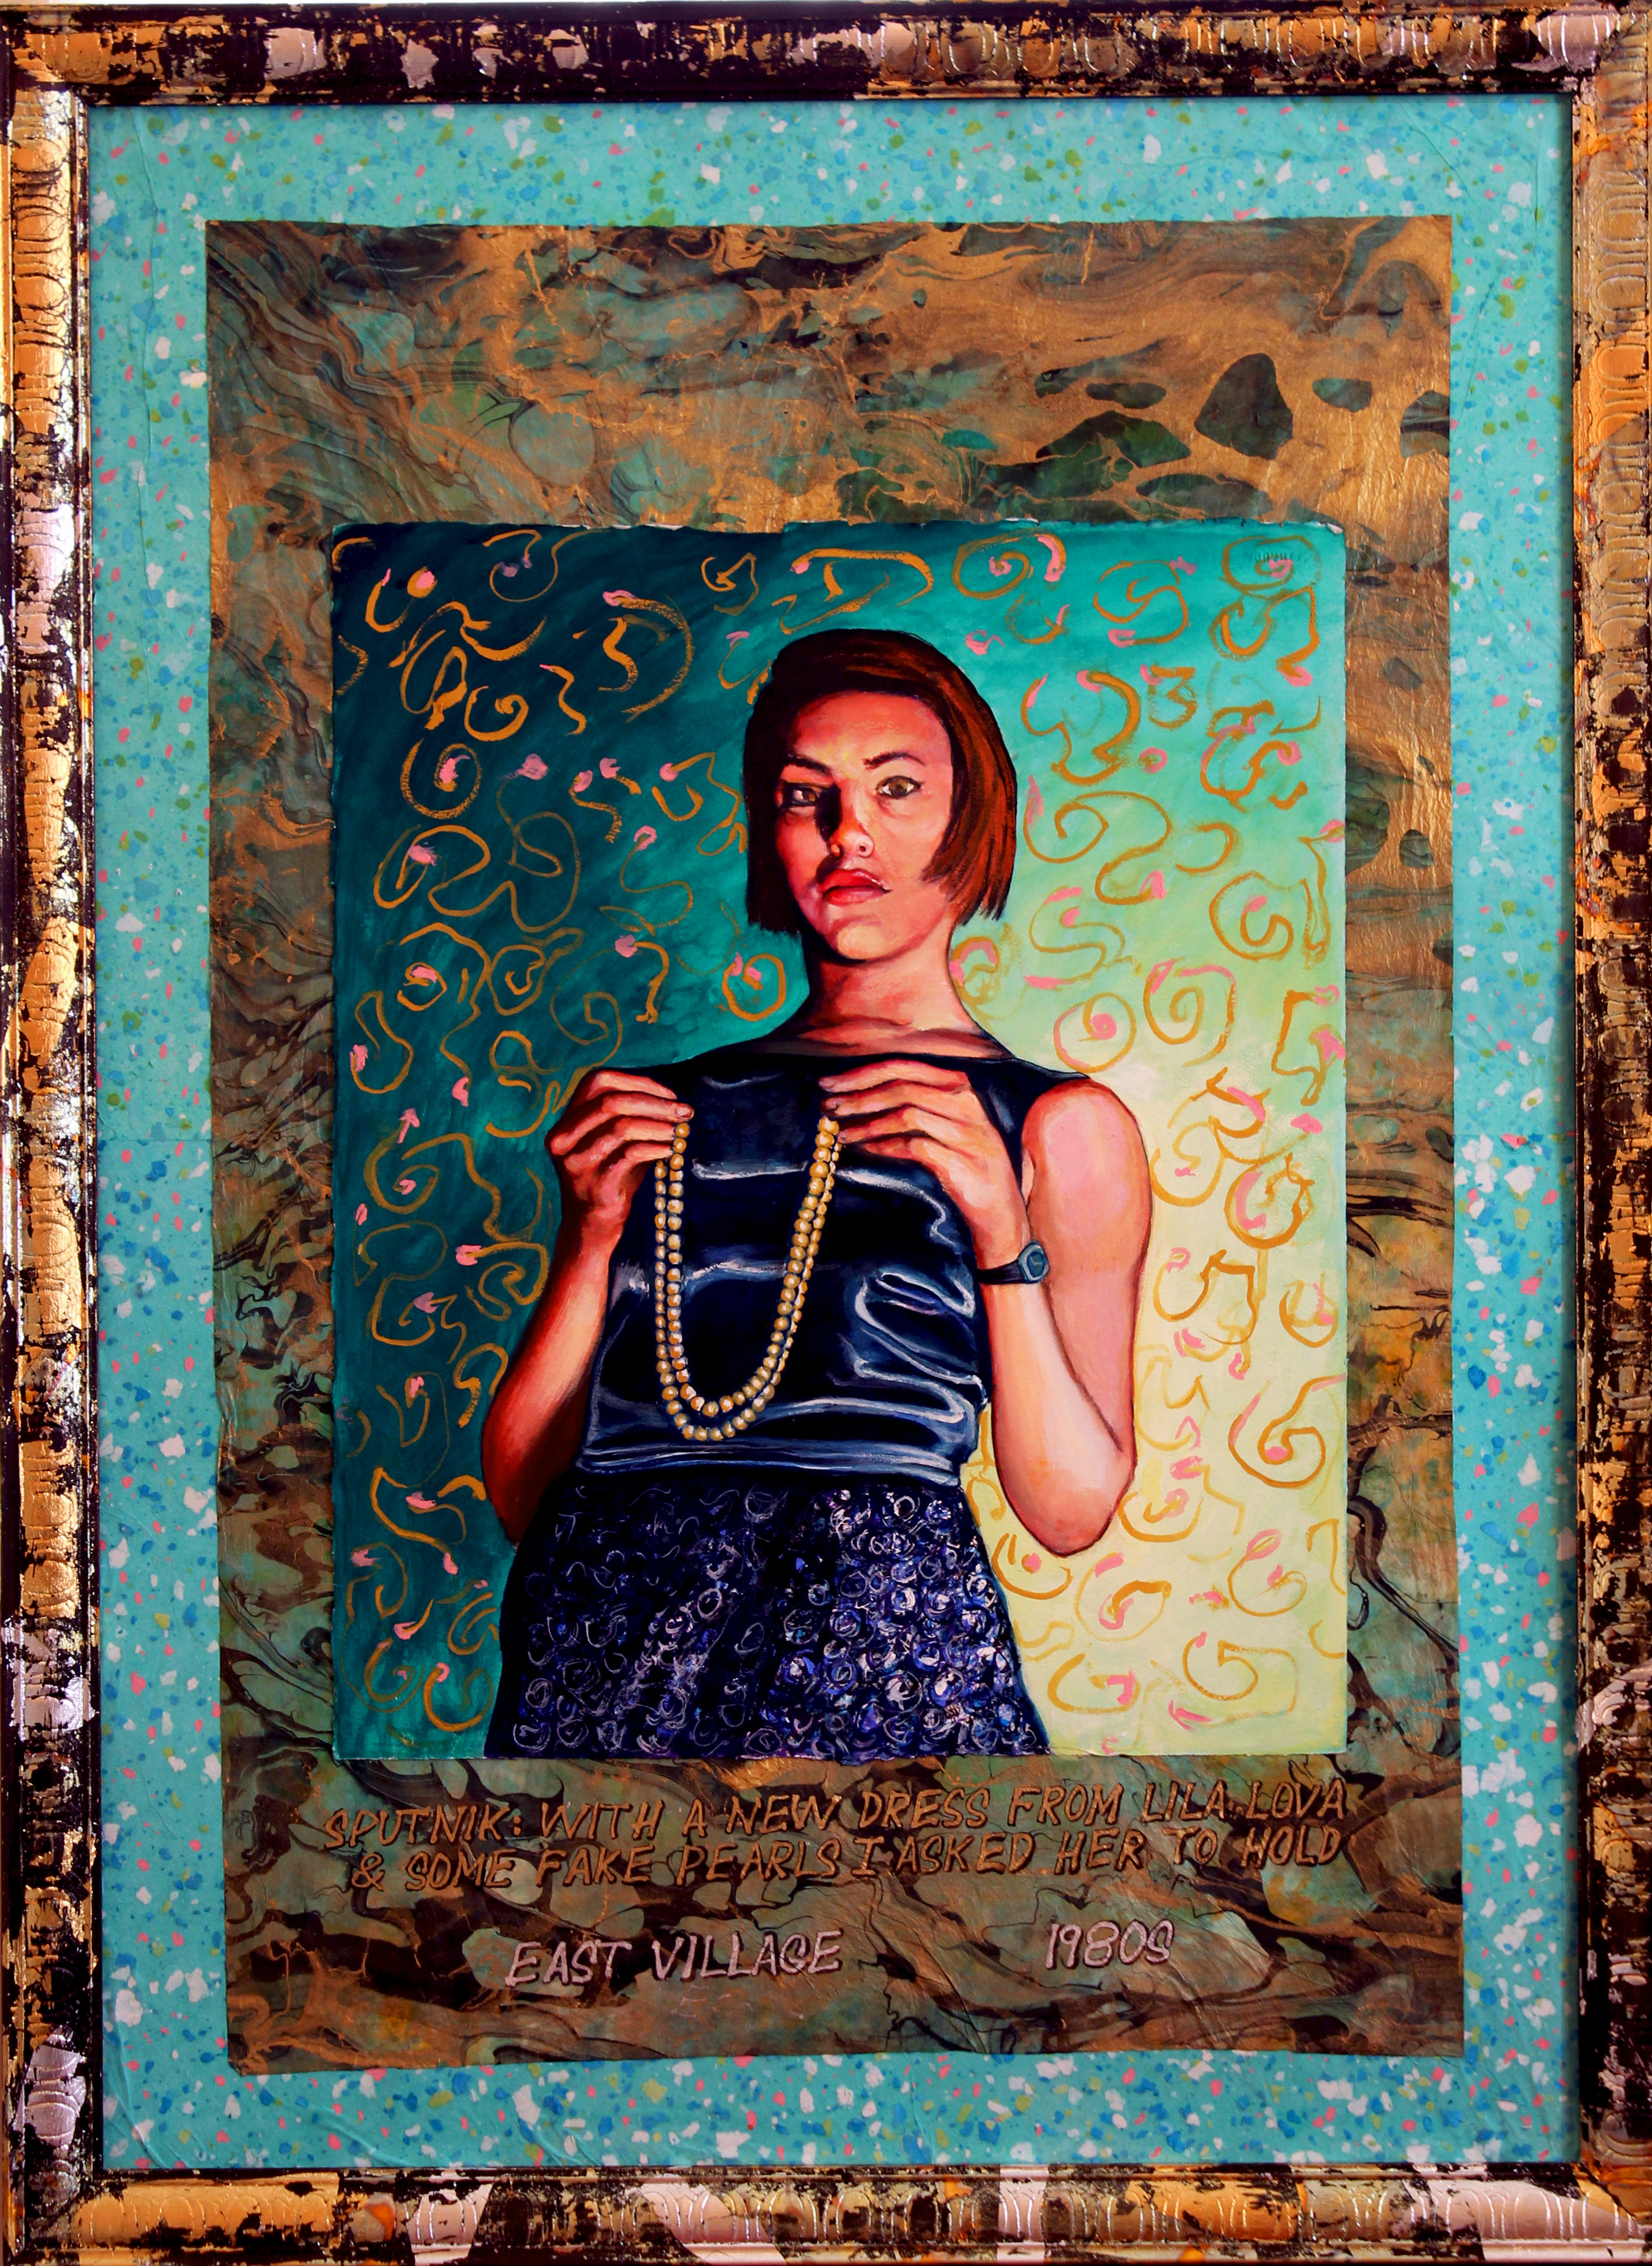 Sputnik: With a New Dress From Lila Lova and Some Fake Pearls I Asked Her to Hold. East Village 1980s. Painting by Edward Weiss